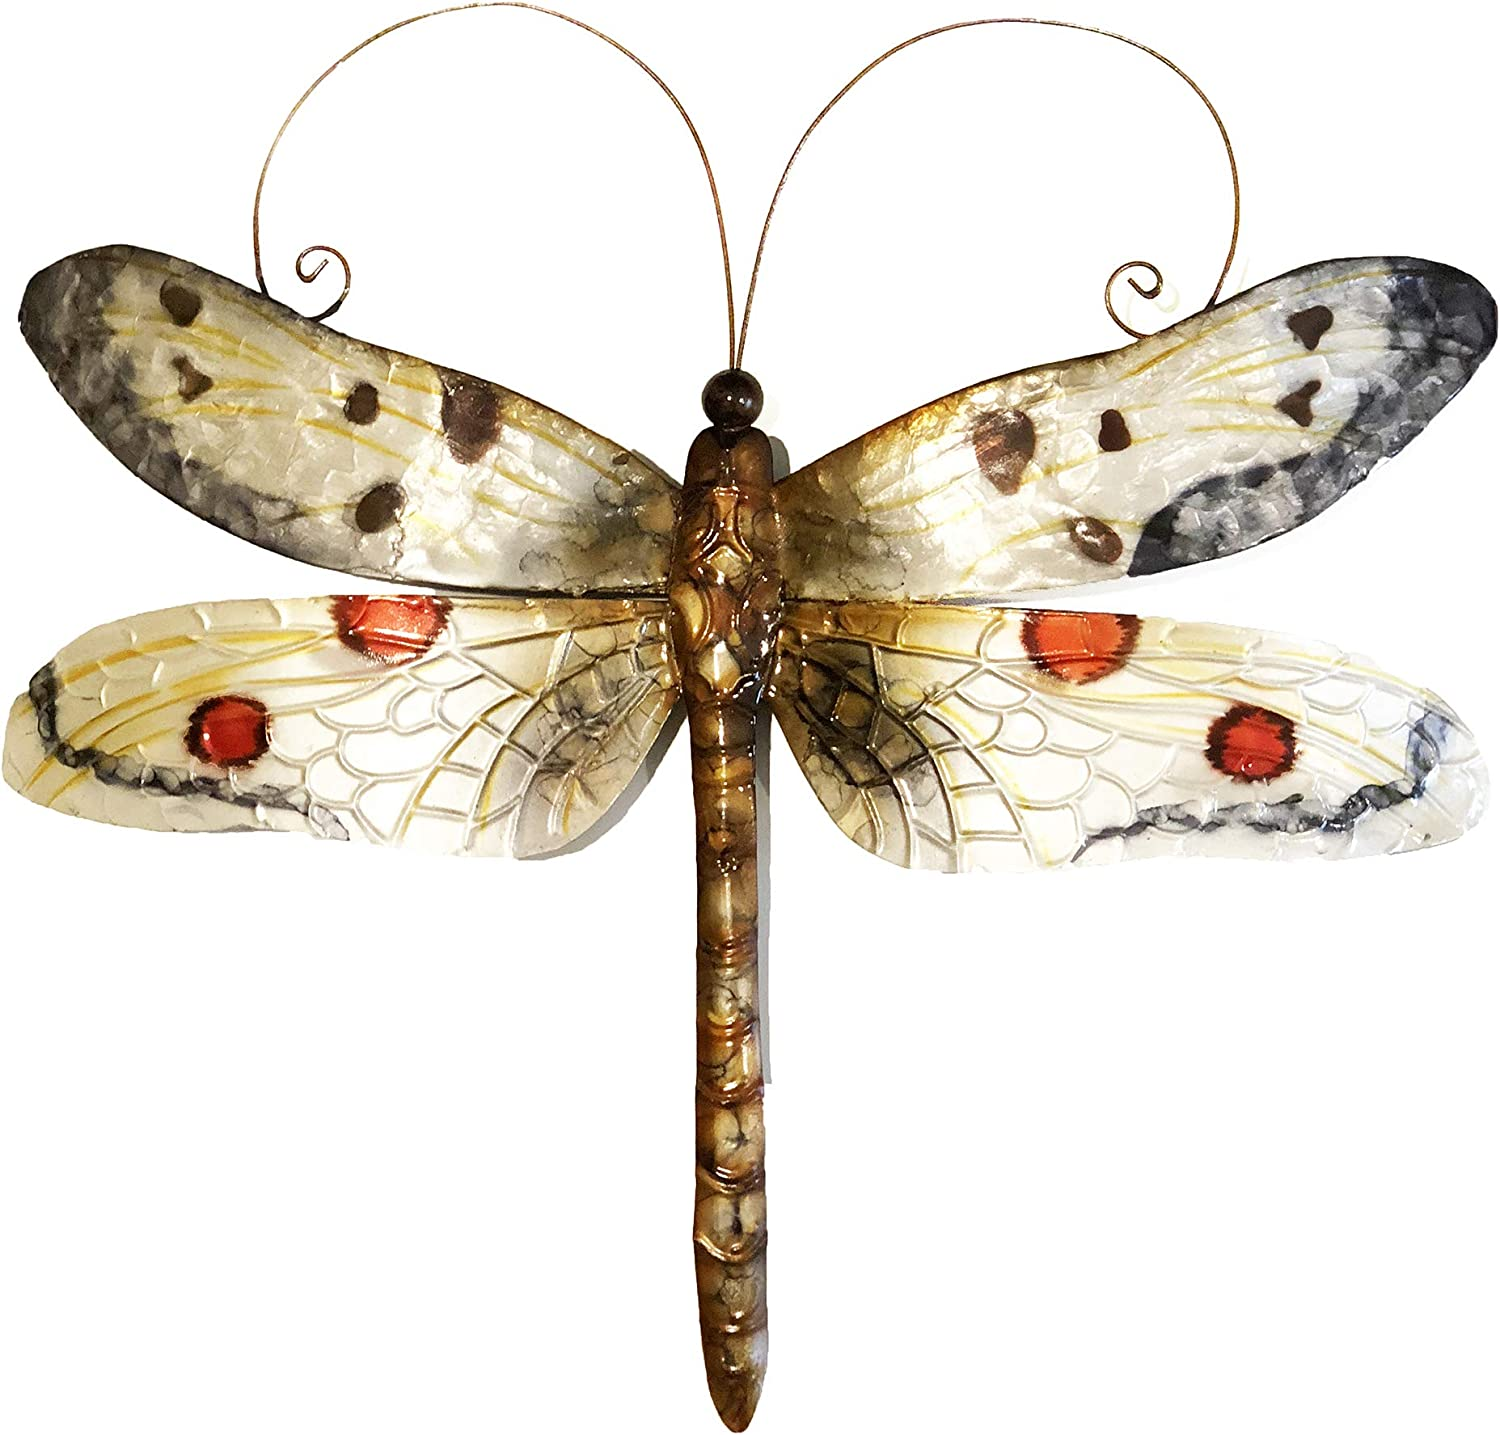 Eangee Home Design Dragonfly Wall Decor White And Red 14 Inches Length x 1 Inch Width x 12 Inches Height (m4026)